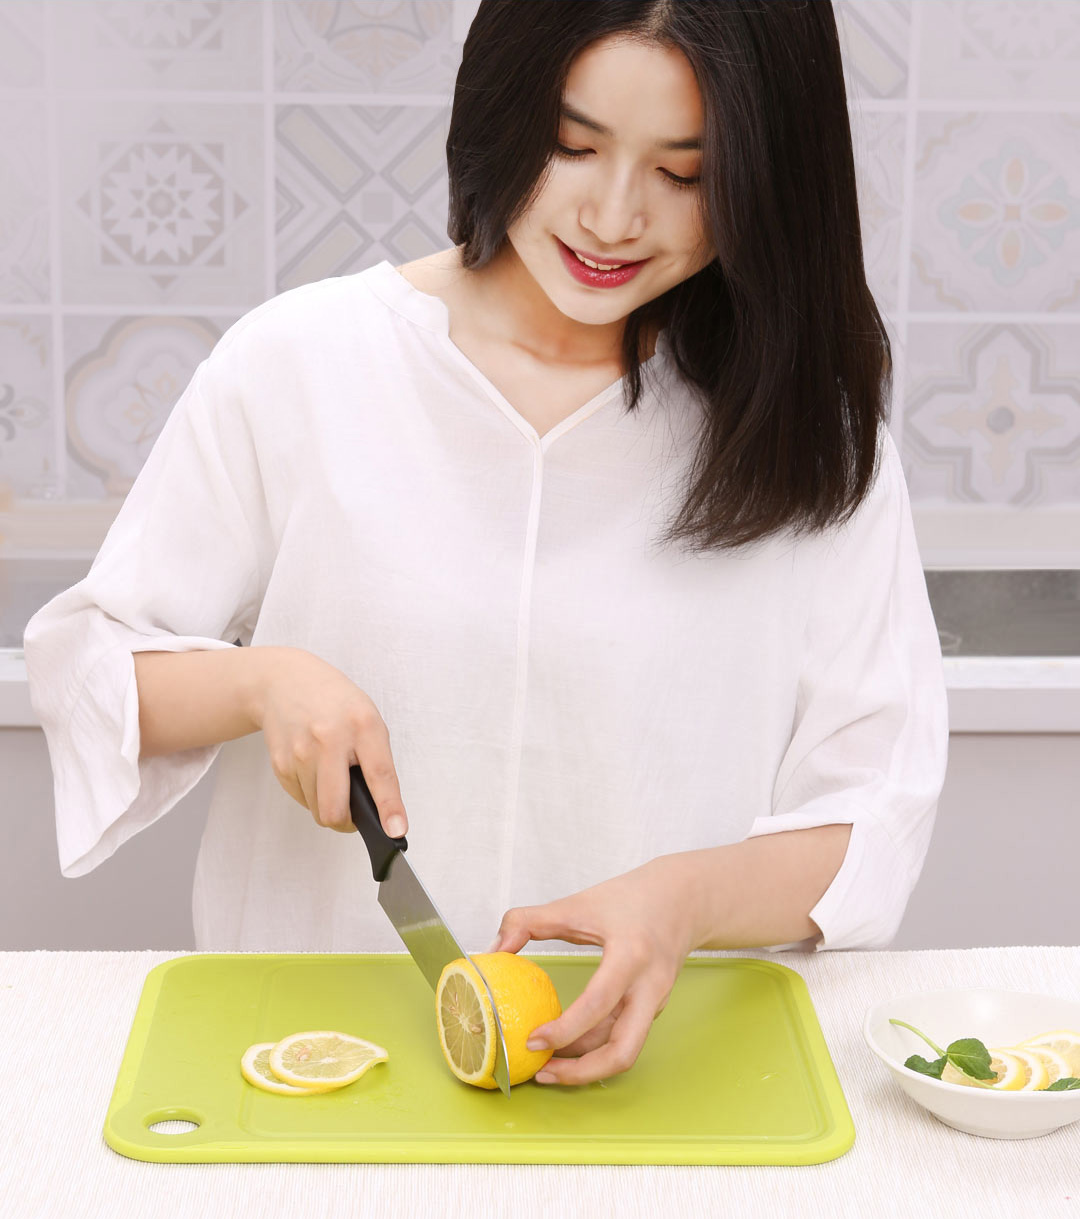 Quange Non-slip Double-sided Cutting Board Set